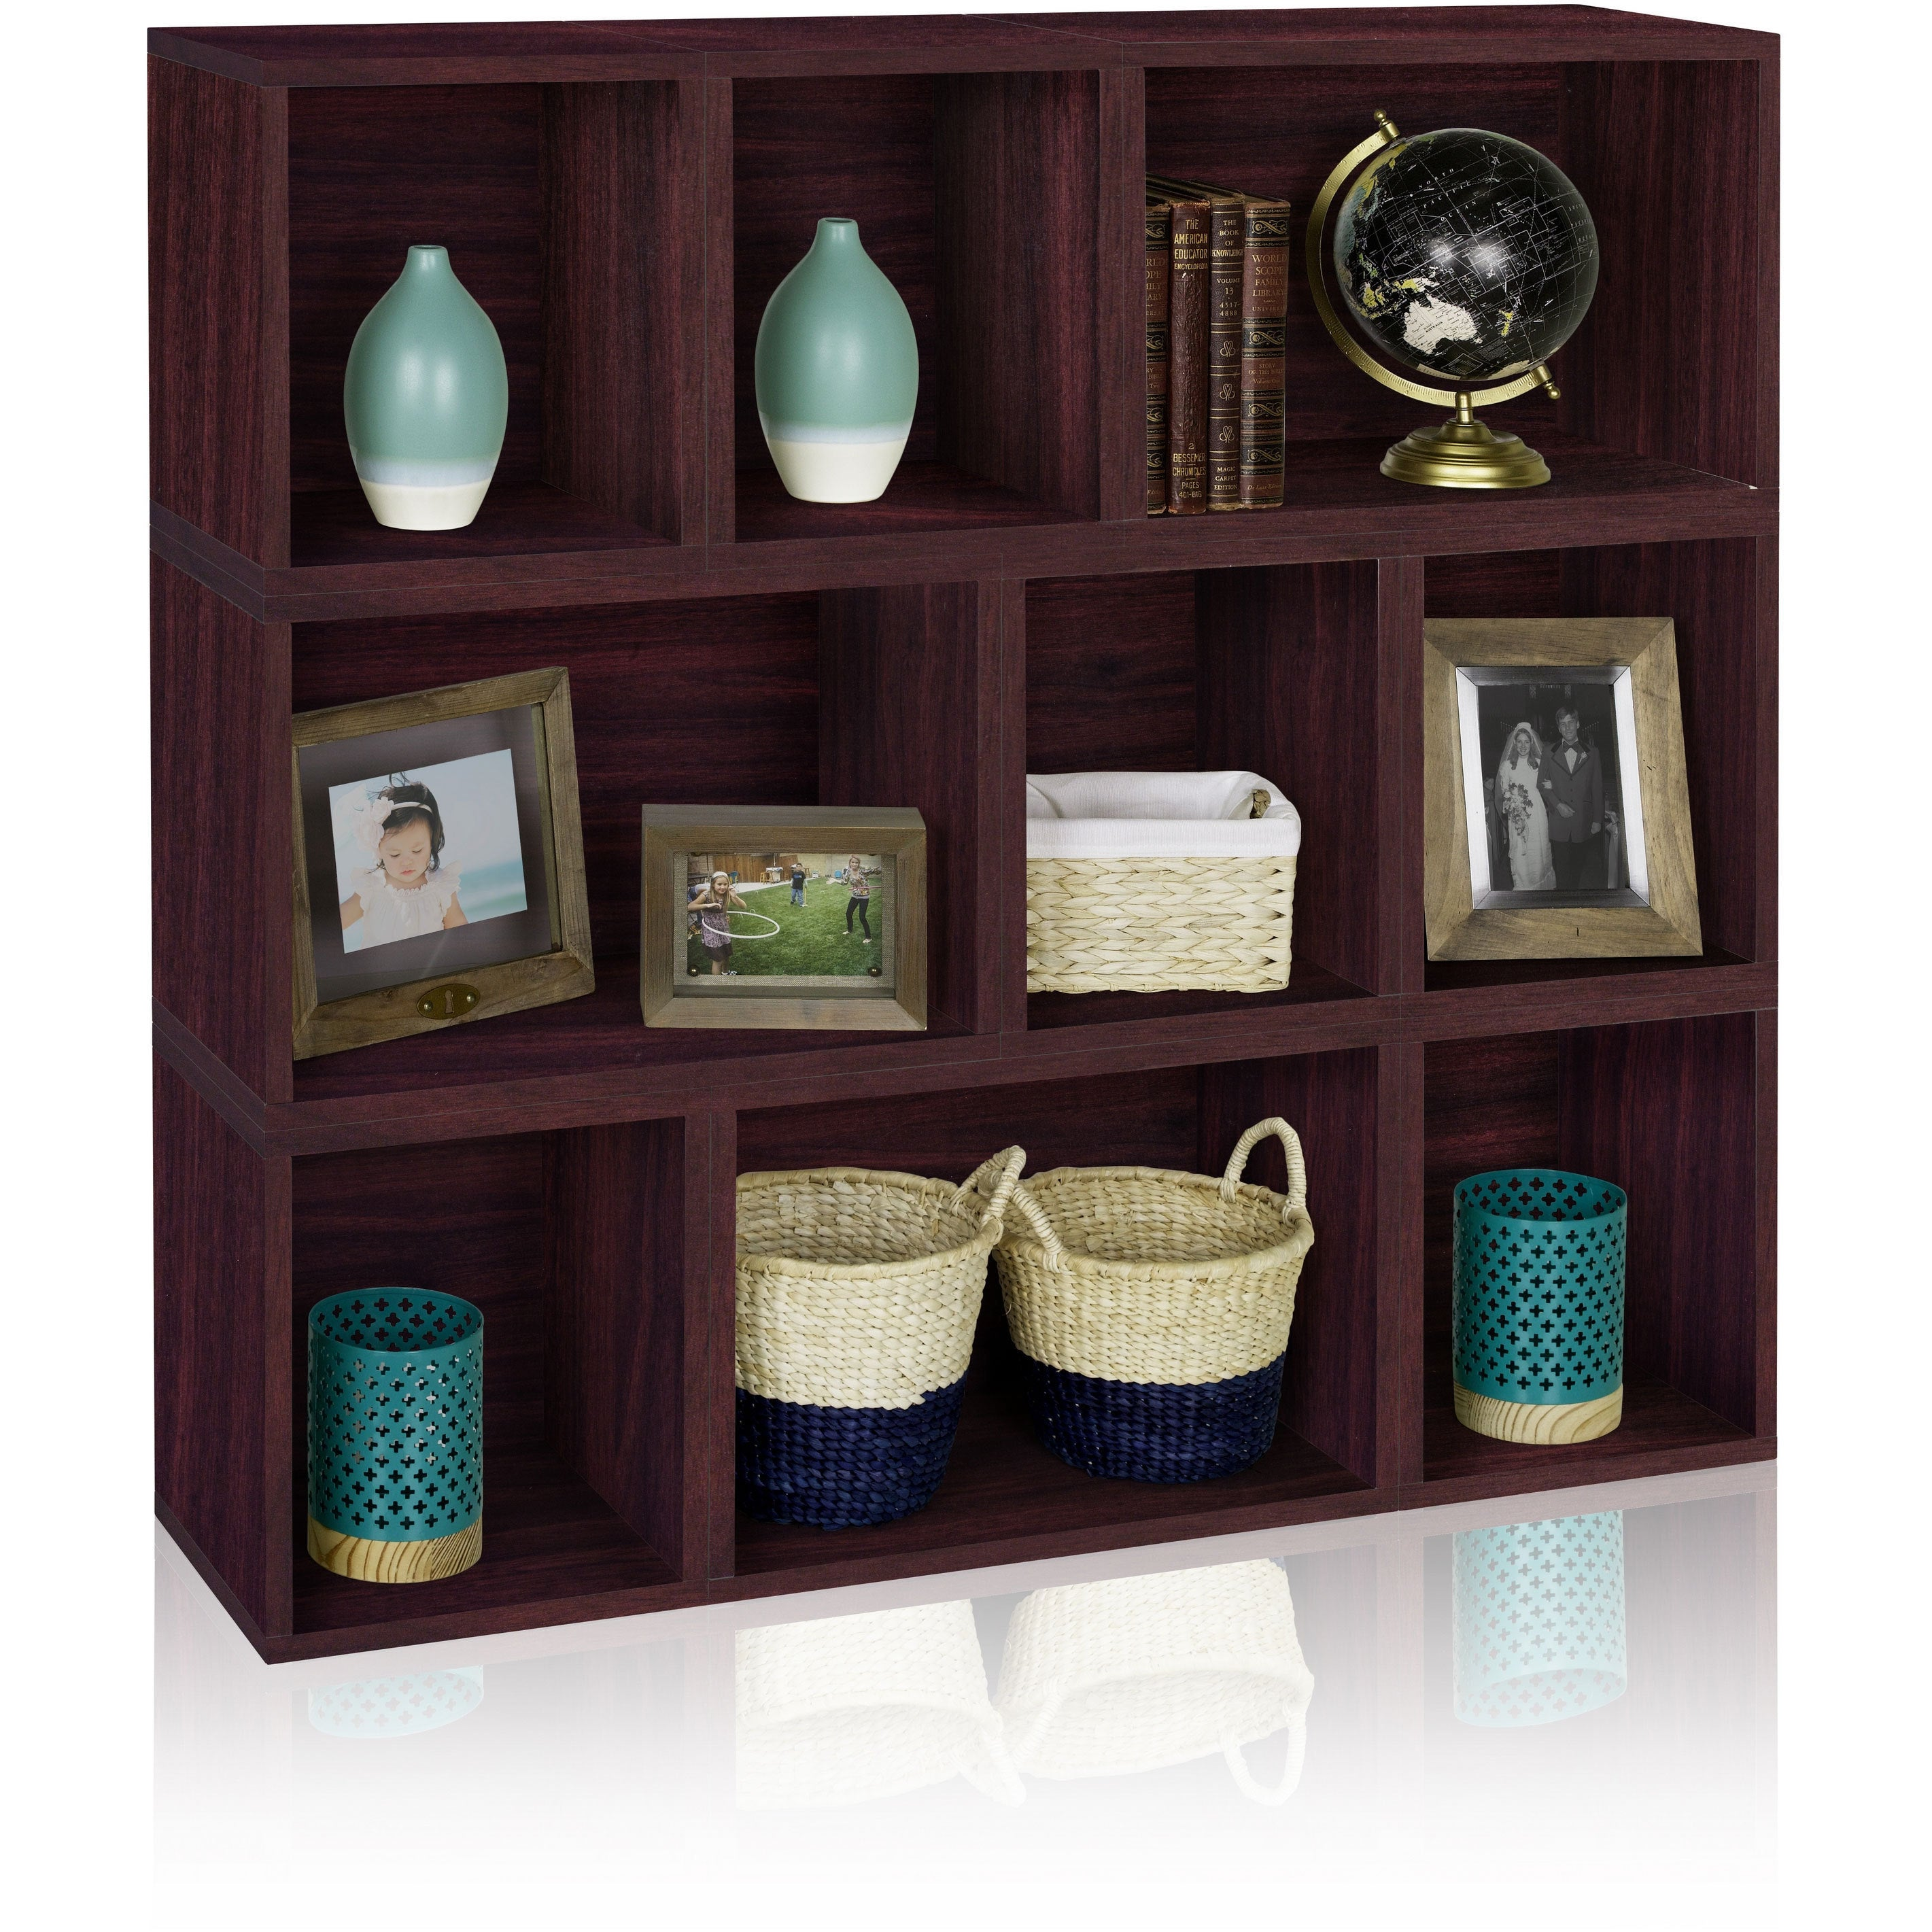 Shop oxford eco stackable modular storage cube and rectangle system by way basics lifetime guarantee free shipping today overstock com 9318318